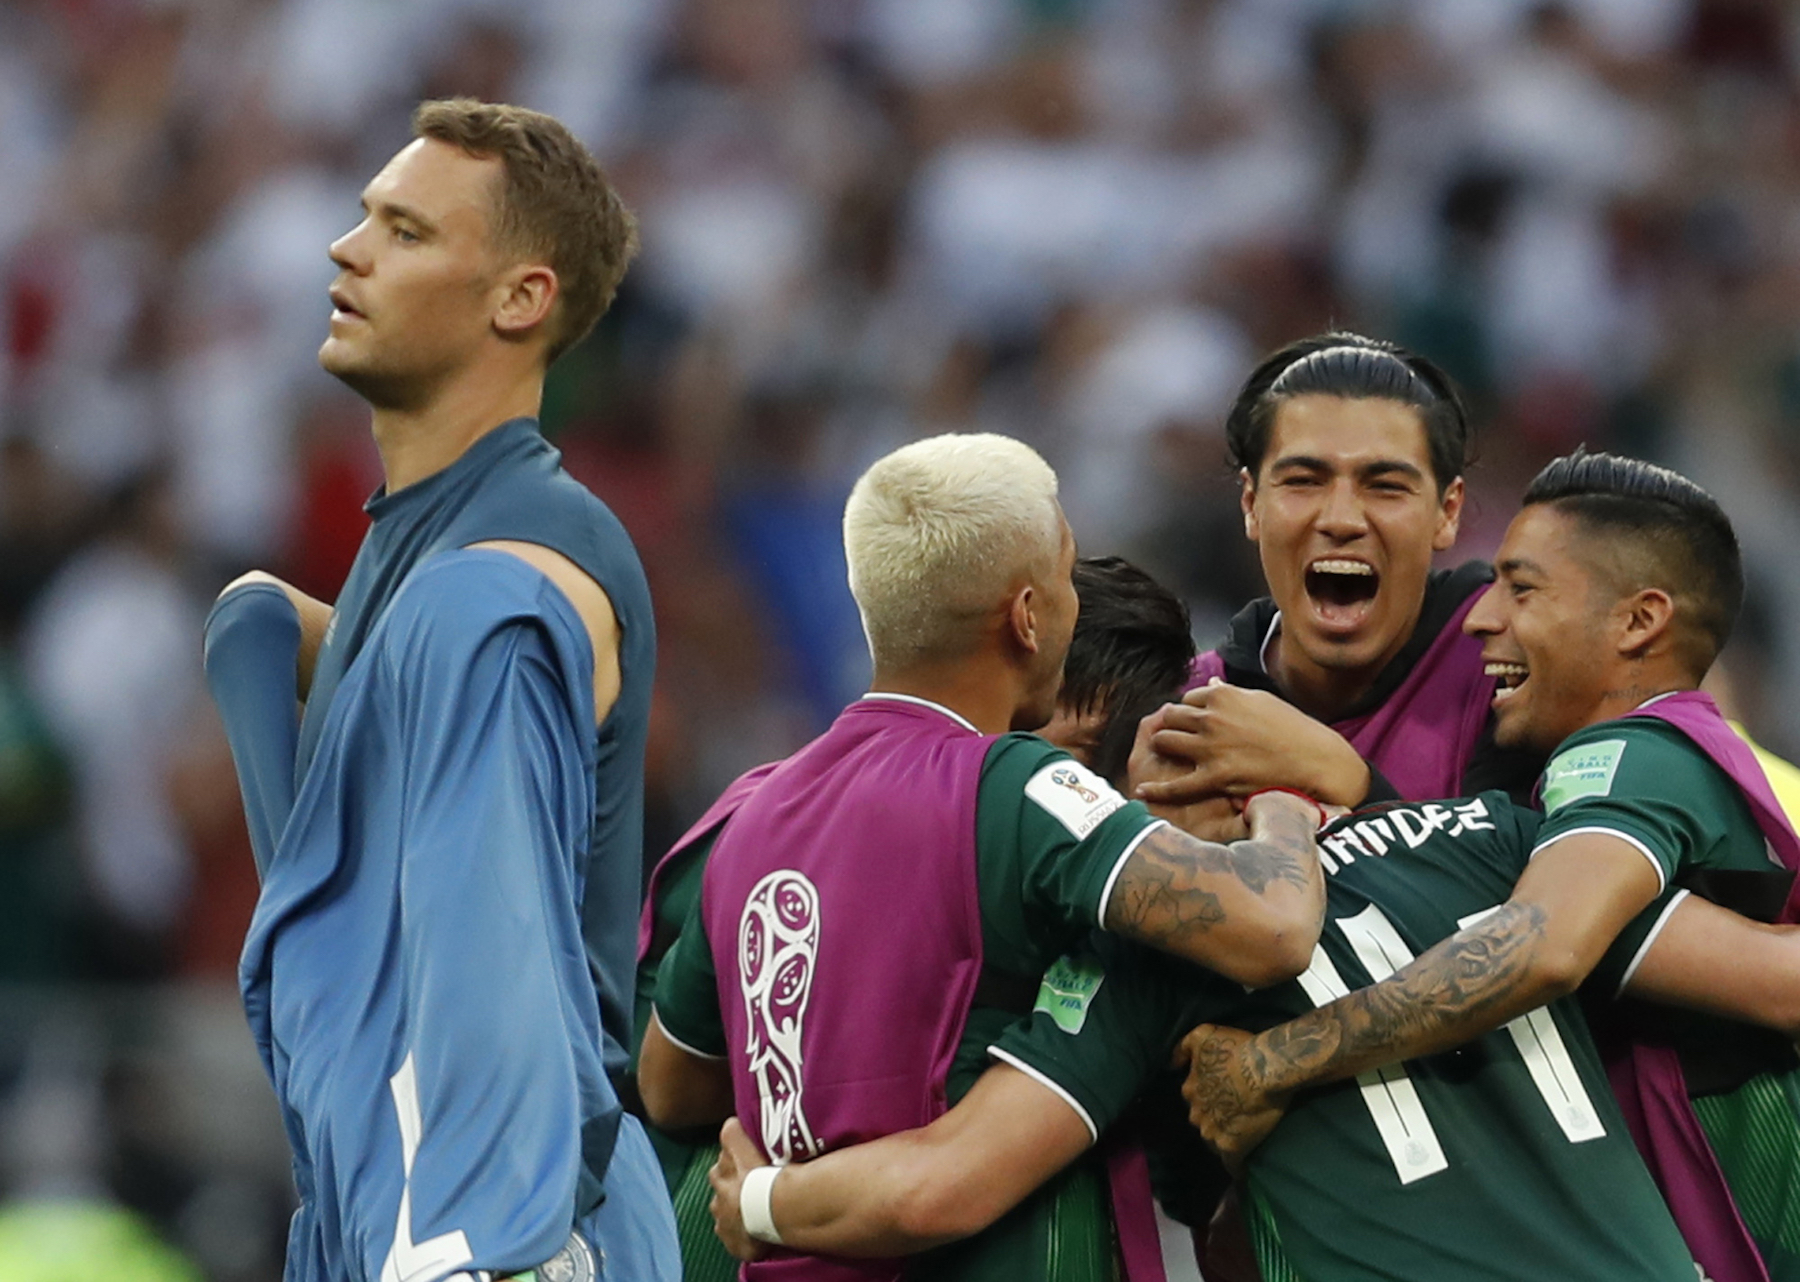 "<div class=""meta image-caption""><div class=""origin-logo origin-image ap""><span>AP</span></div><span class=""caption-text"">Germany goalkeeper Manuel Neuer walks past as Mexico players celebrate after defeating Germany 1-0 in their group F match at the 2018 soccer World Cup. (AP Photo/Eduardo Verdugo)</span></div>"